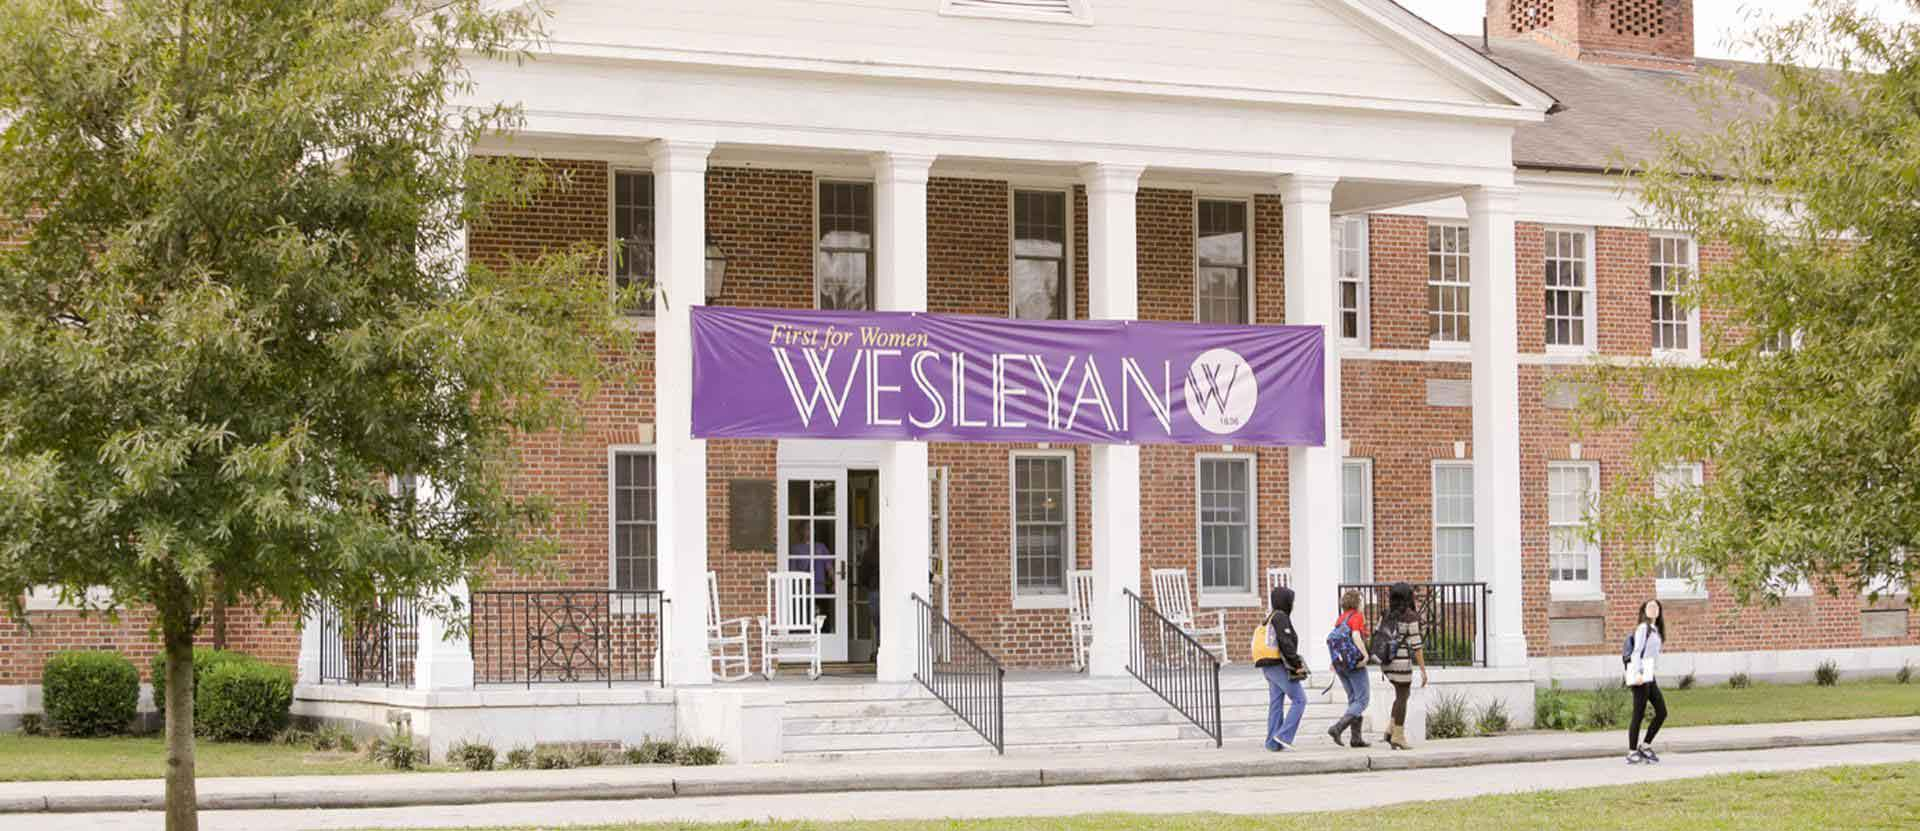 OSP main building with Wesleyan banner hung across the front